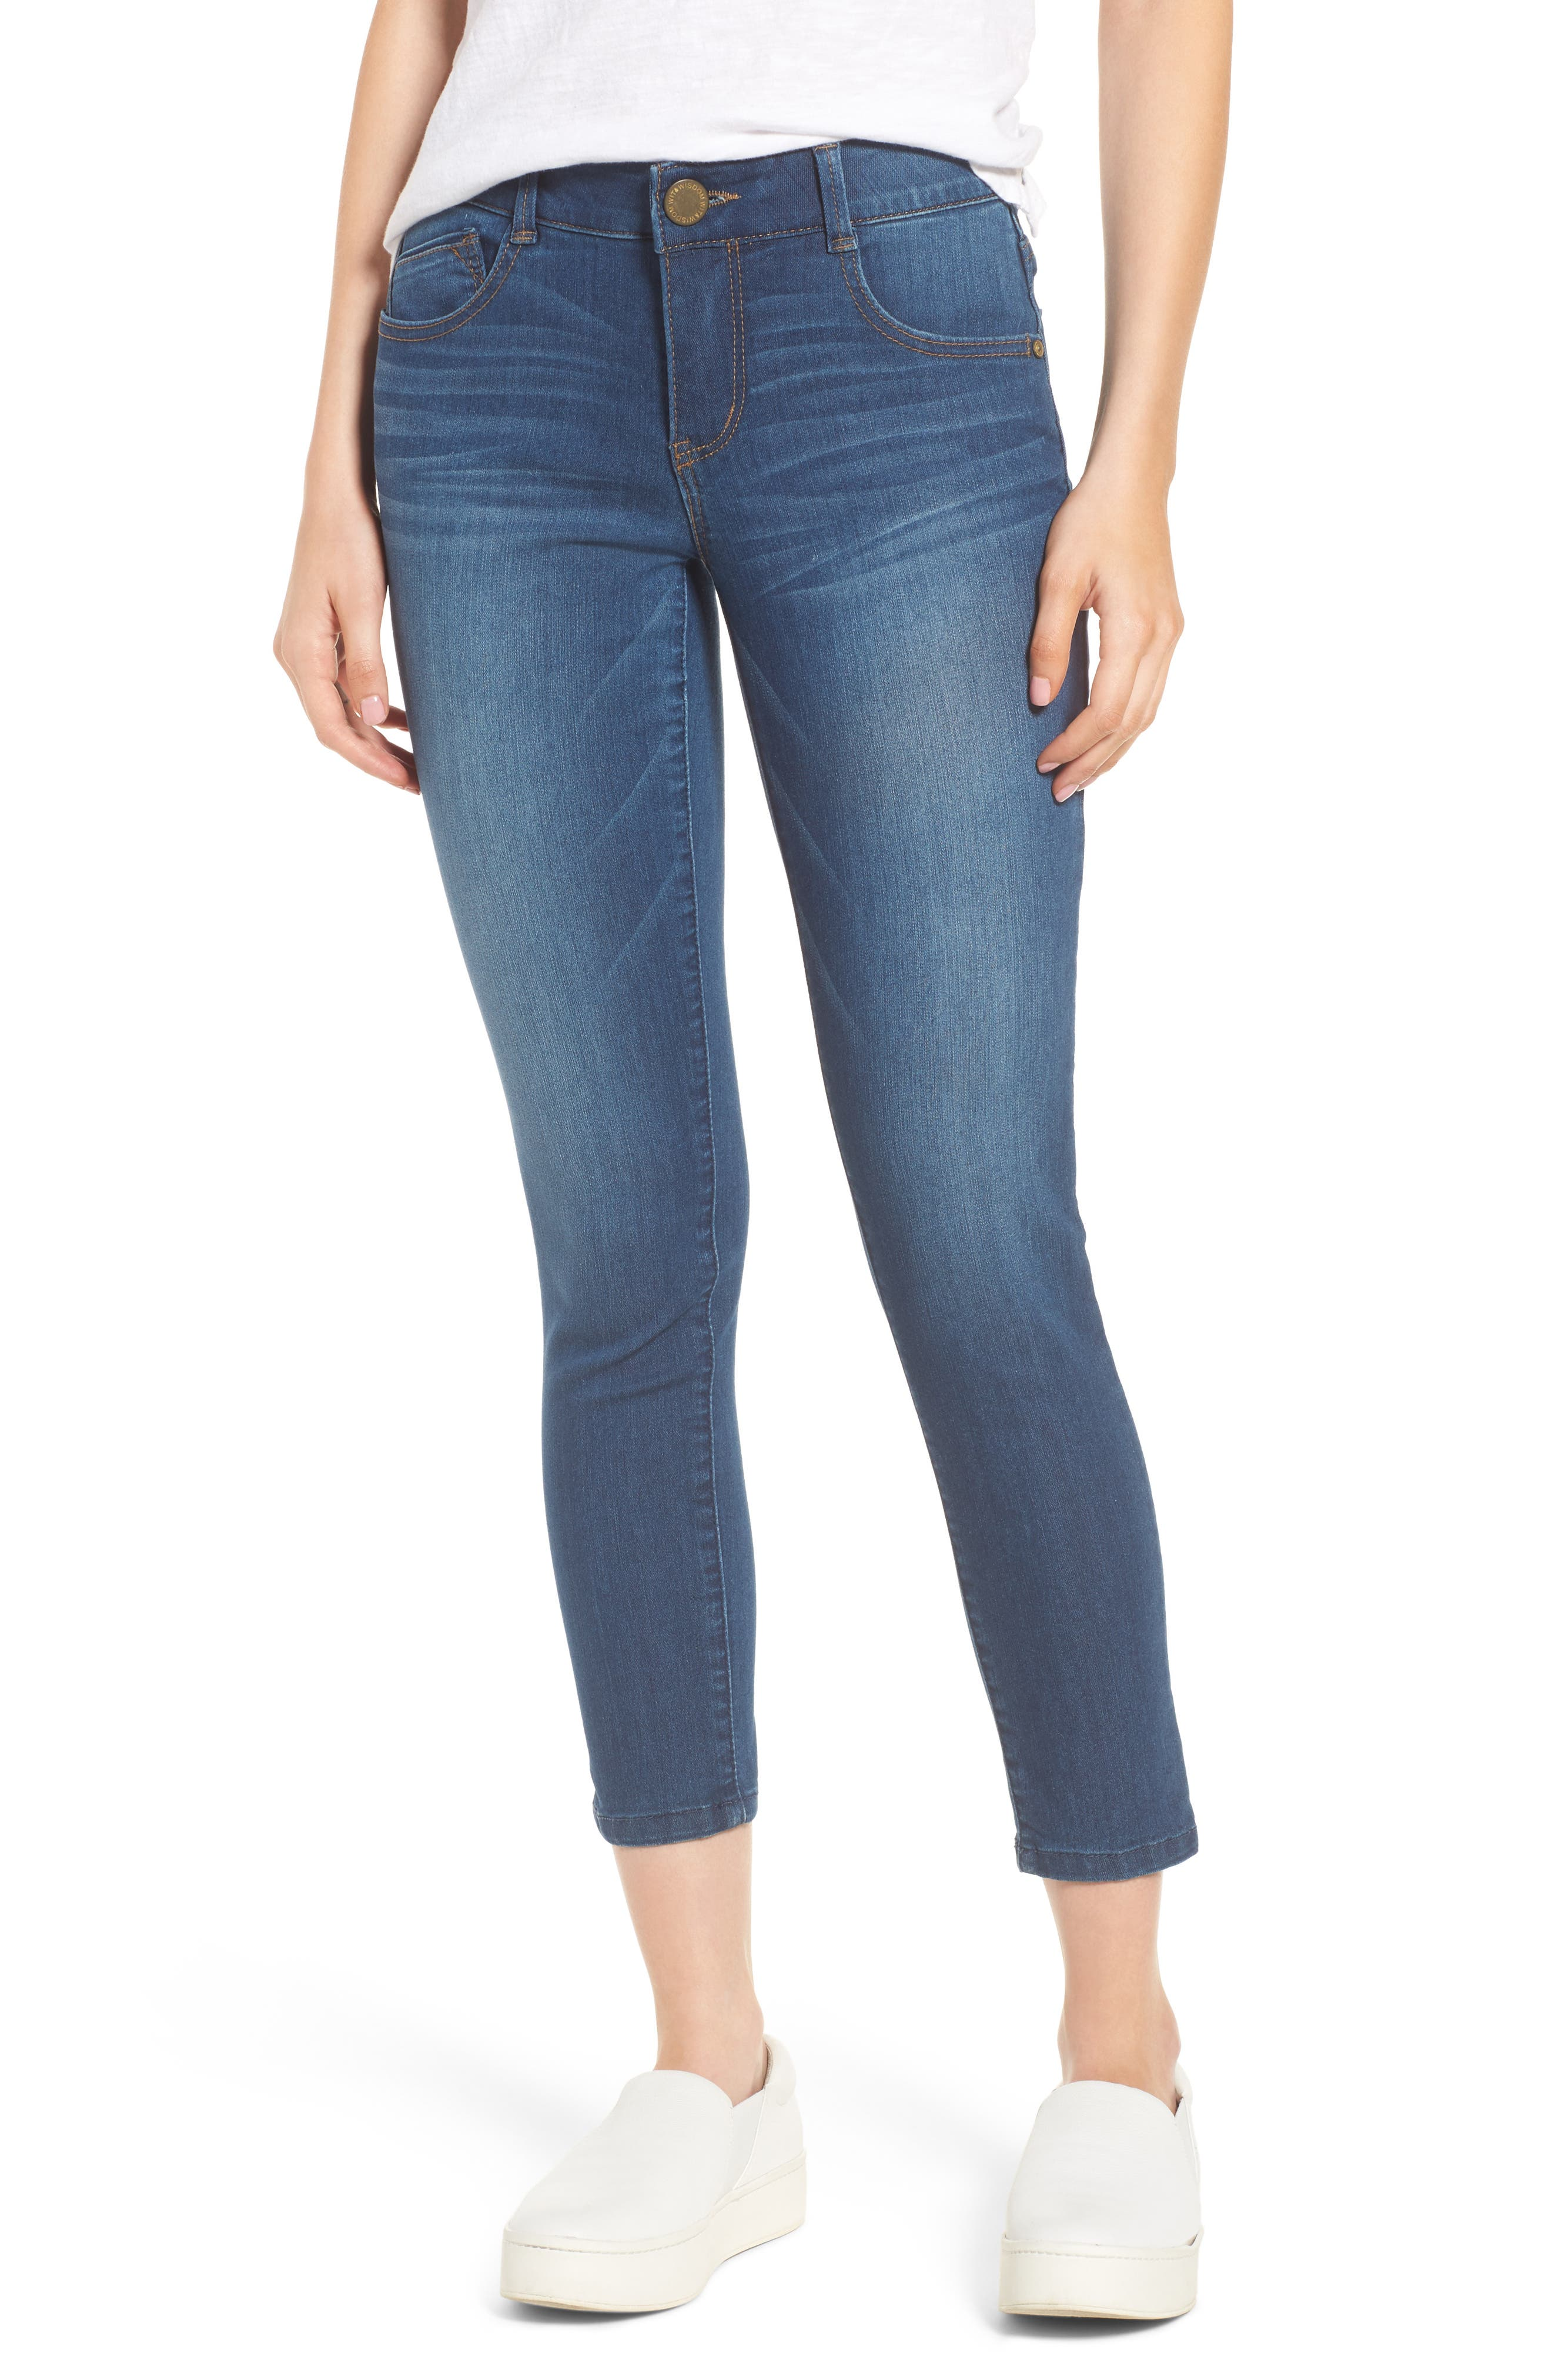 WIT & WISDOM, Ab-solution Ankle Skimmer Jeans, Main thumbnail 1, color, BLUE